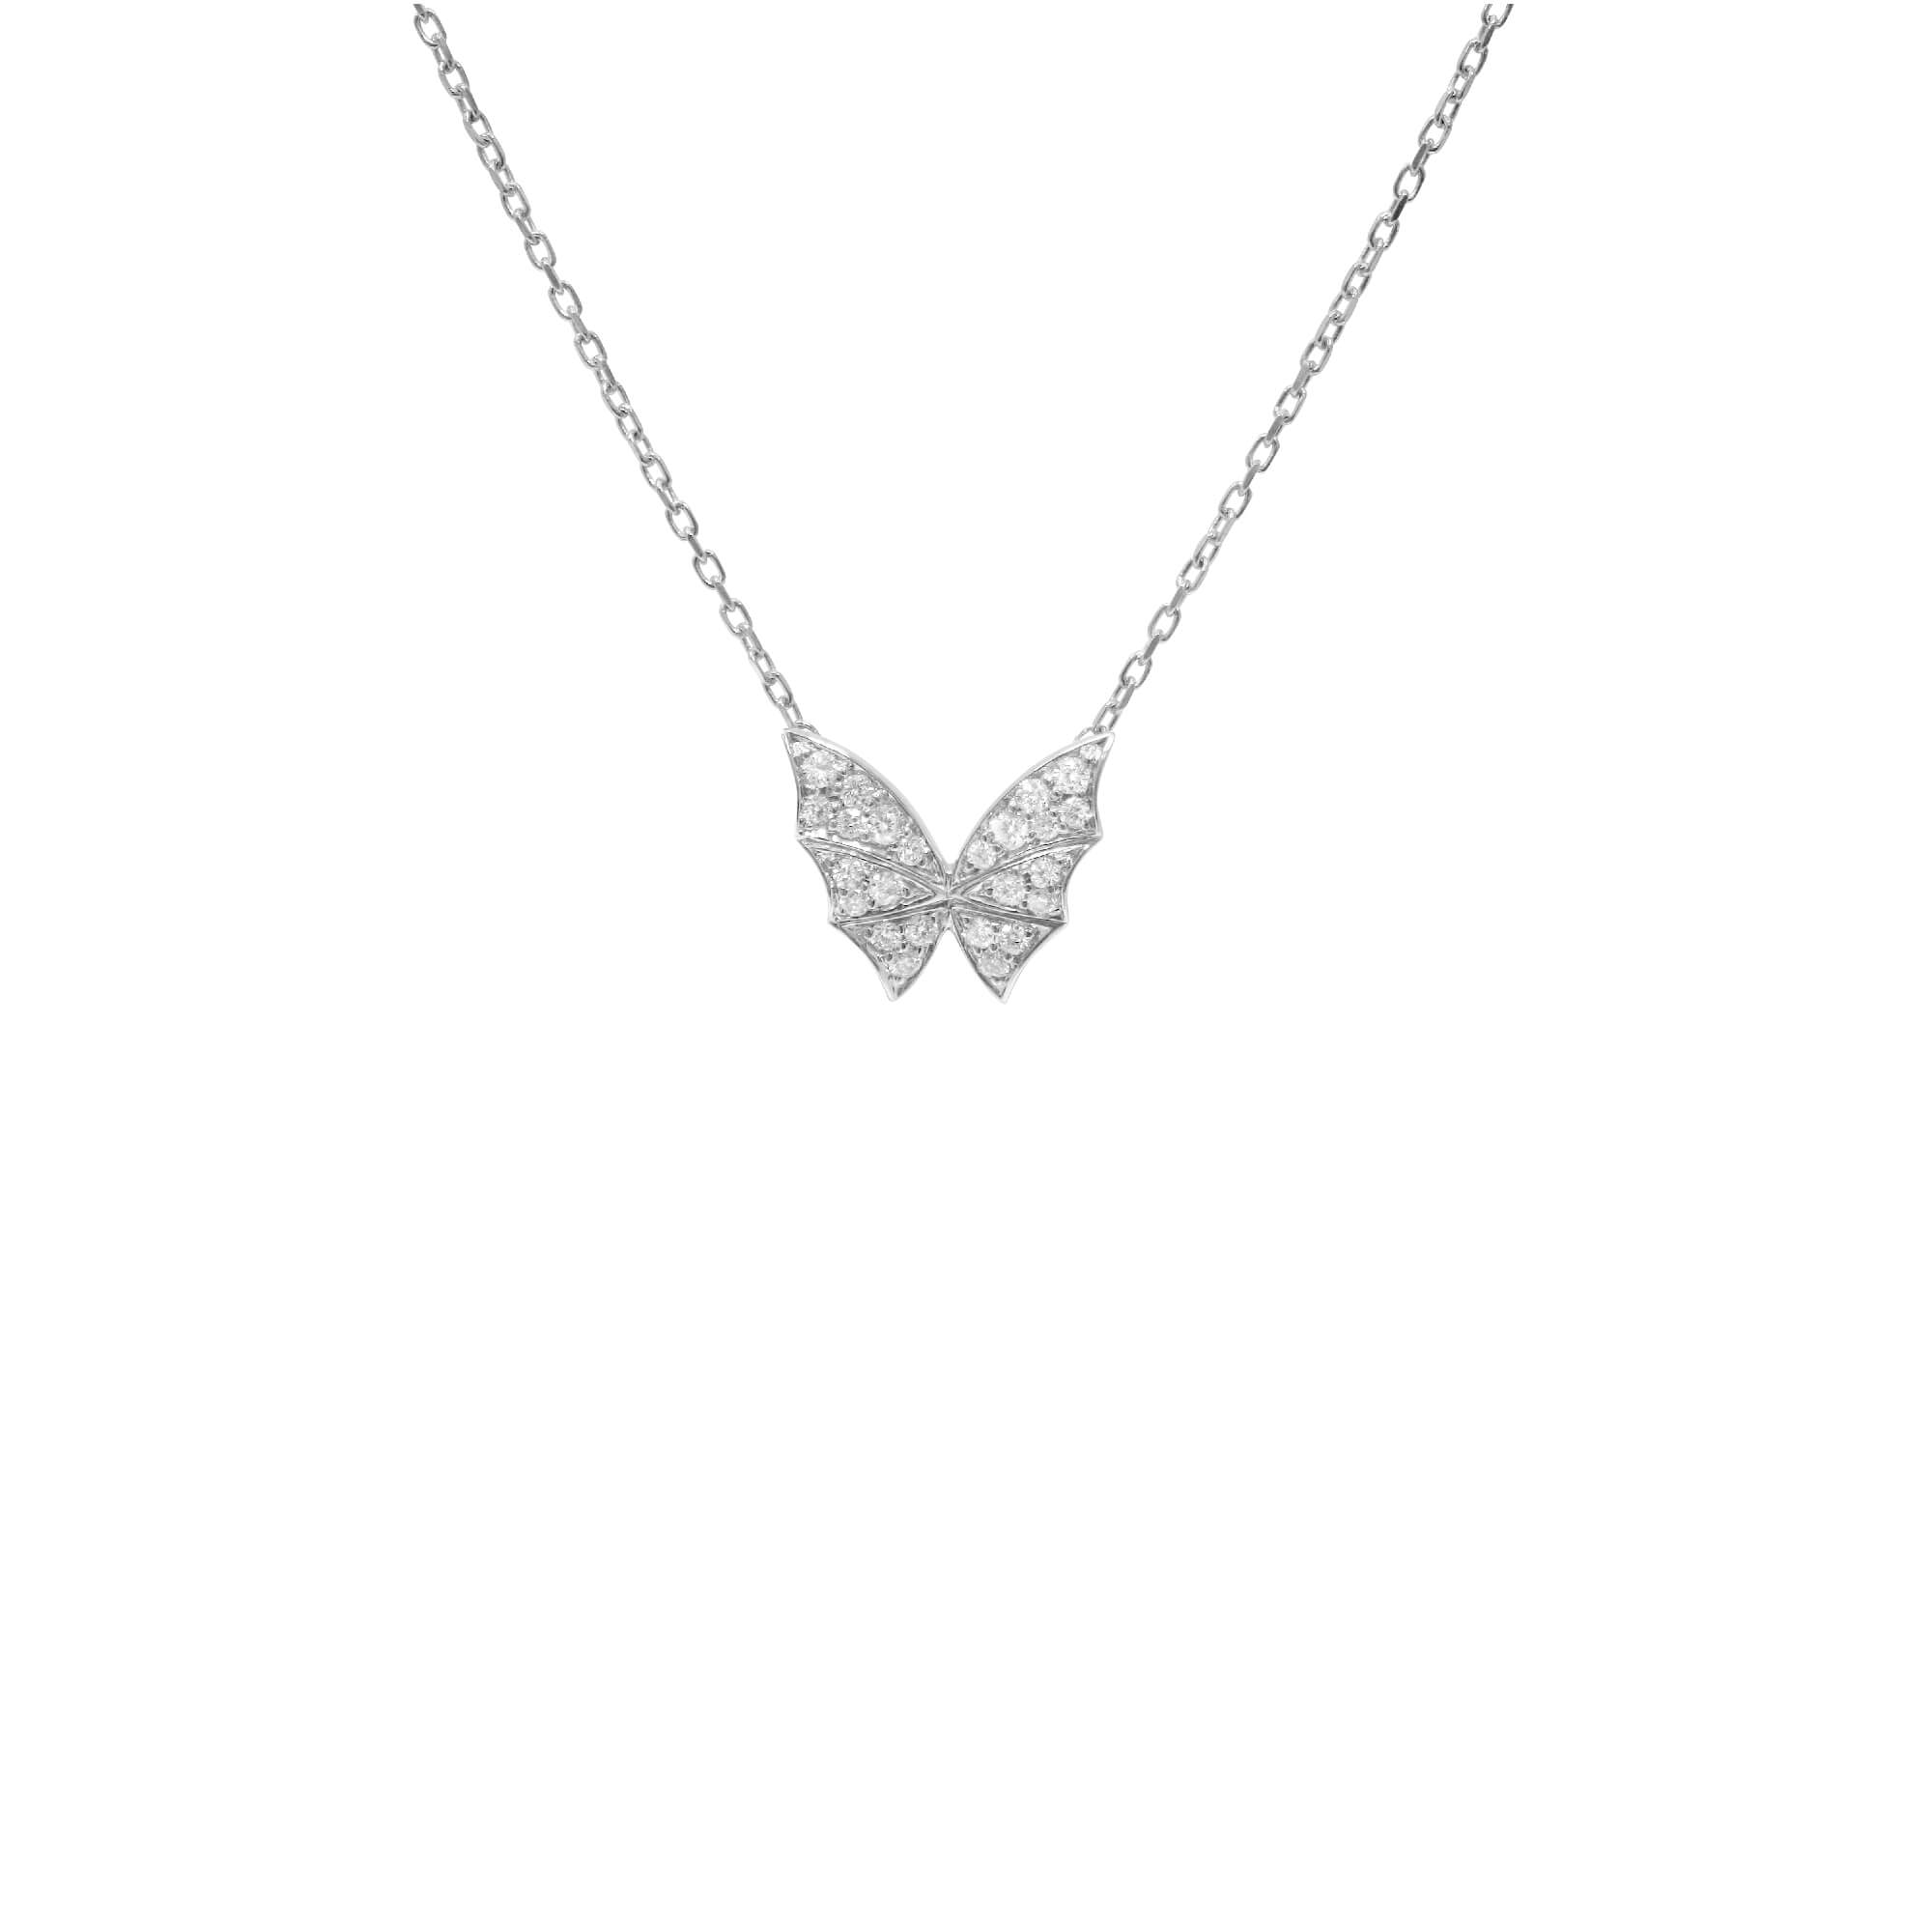 White Gold Pavé Small Necklace | Fly By Night